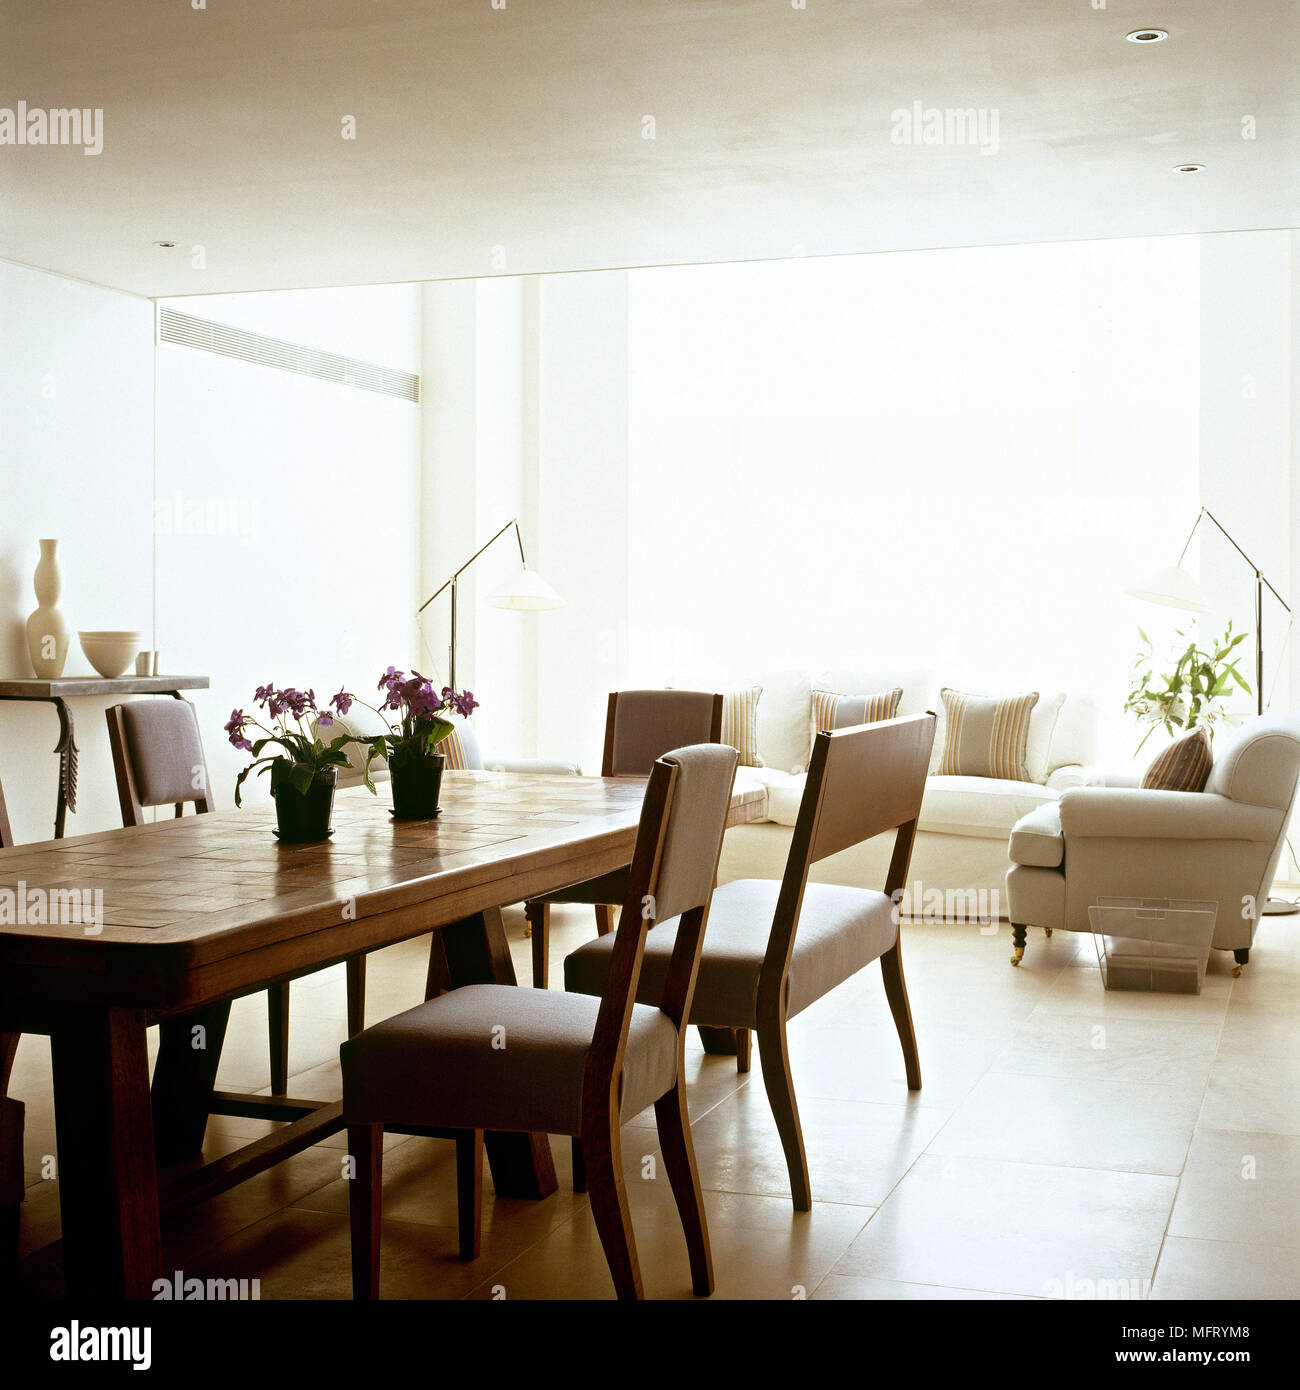 Modern open plan neutral sitting room dining area wood table upholstered chairs sofas interiors rooms open plan contemporary living spaces light airy